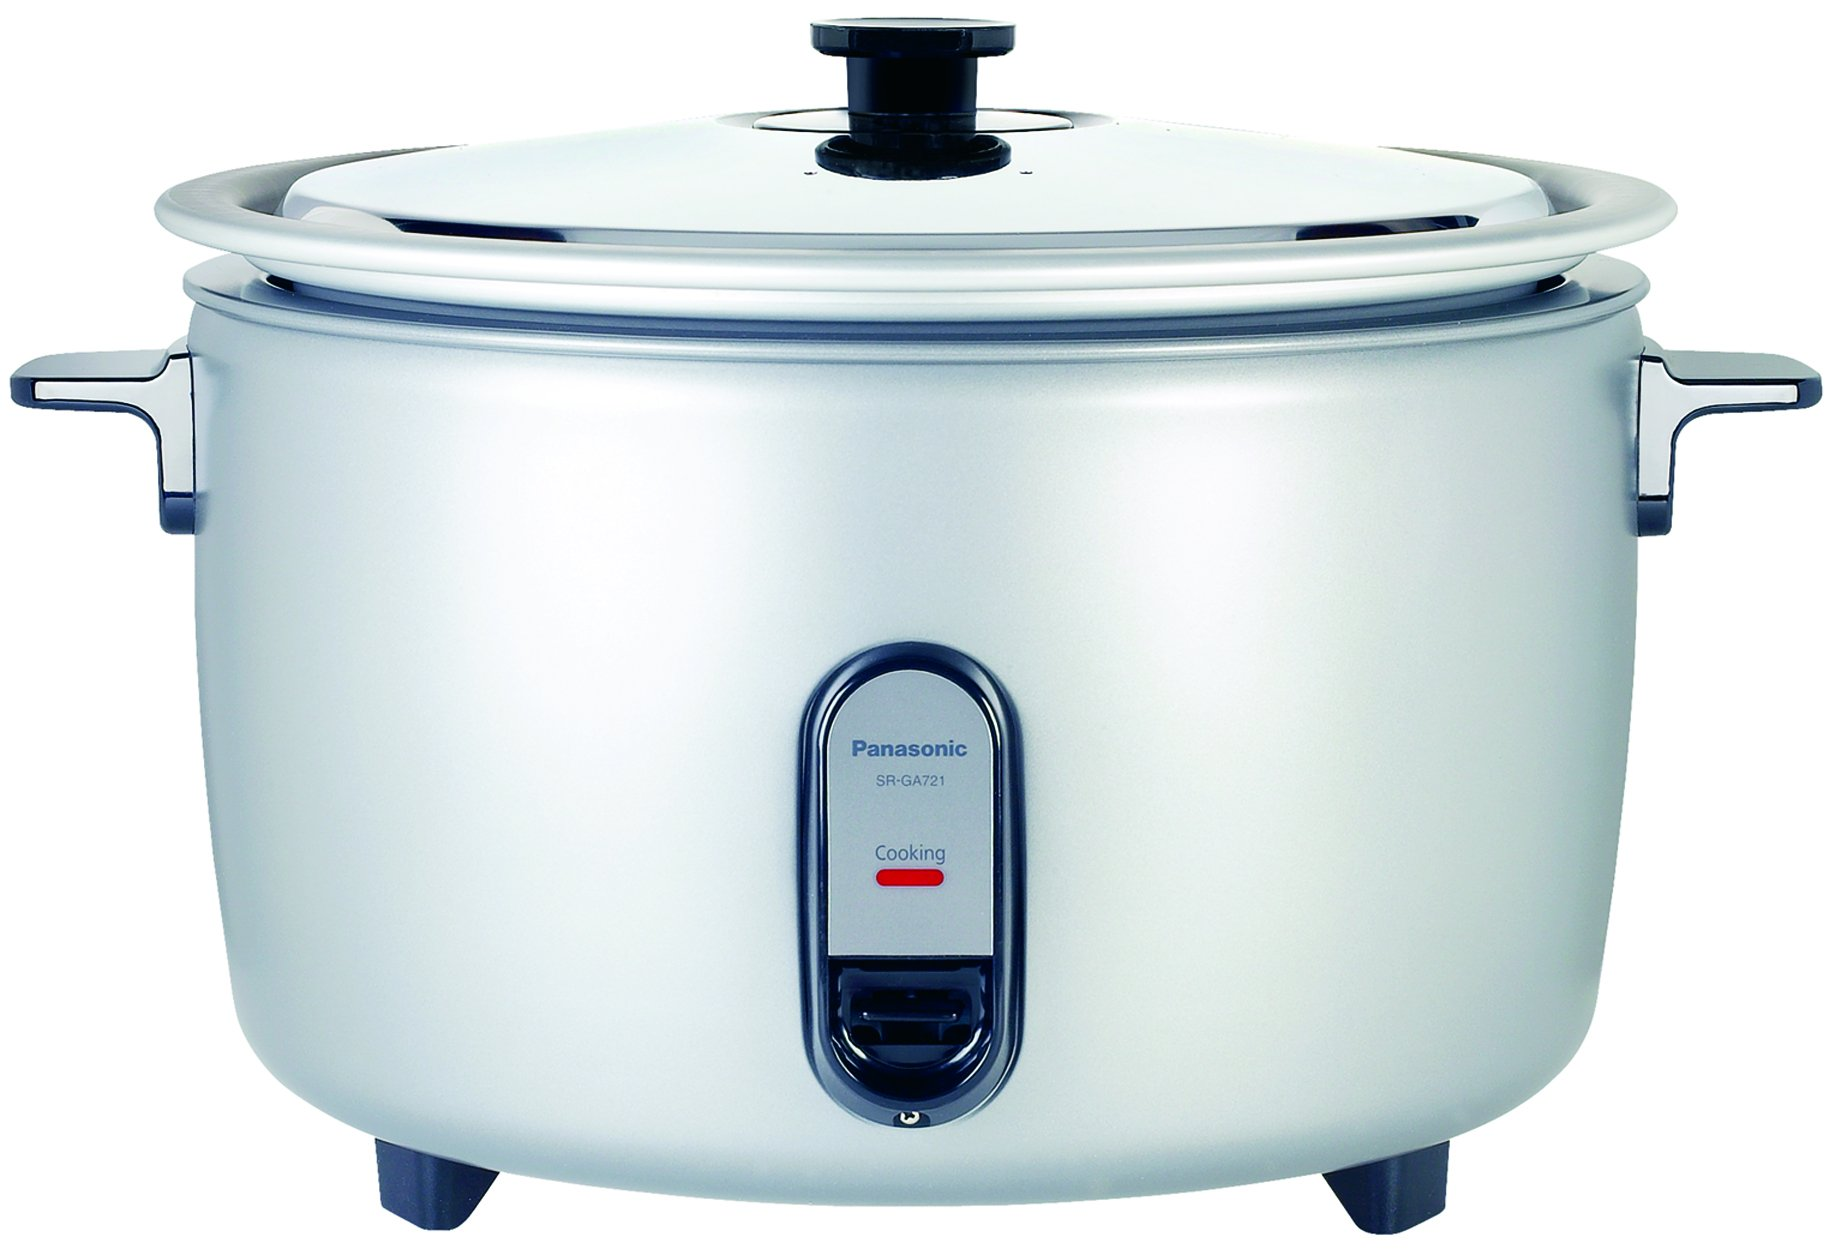 Panasonic SR-GA721L 40 Cup Commercial Rice Cooker, Silver